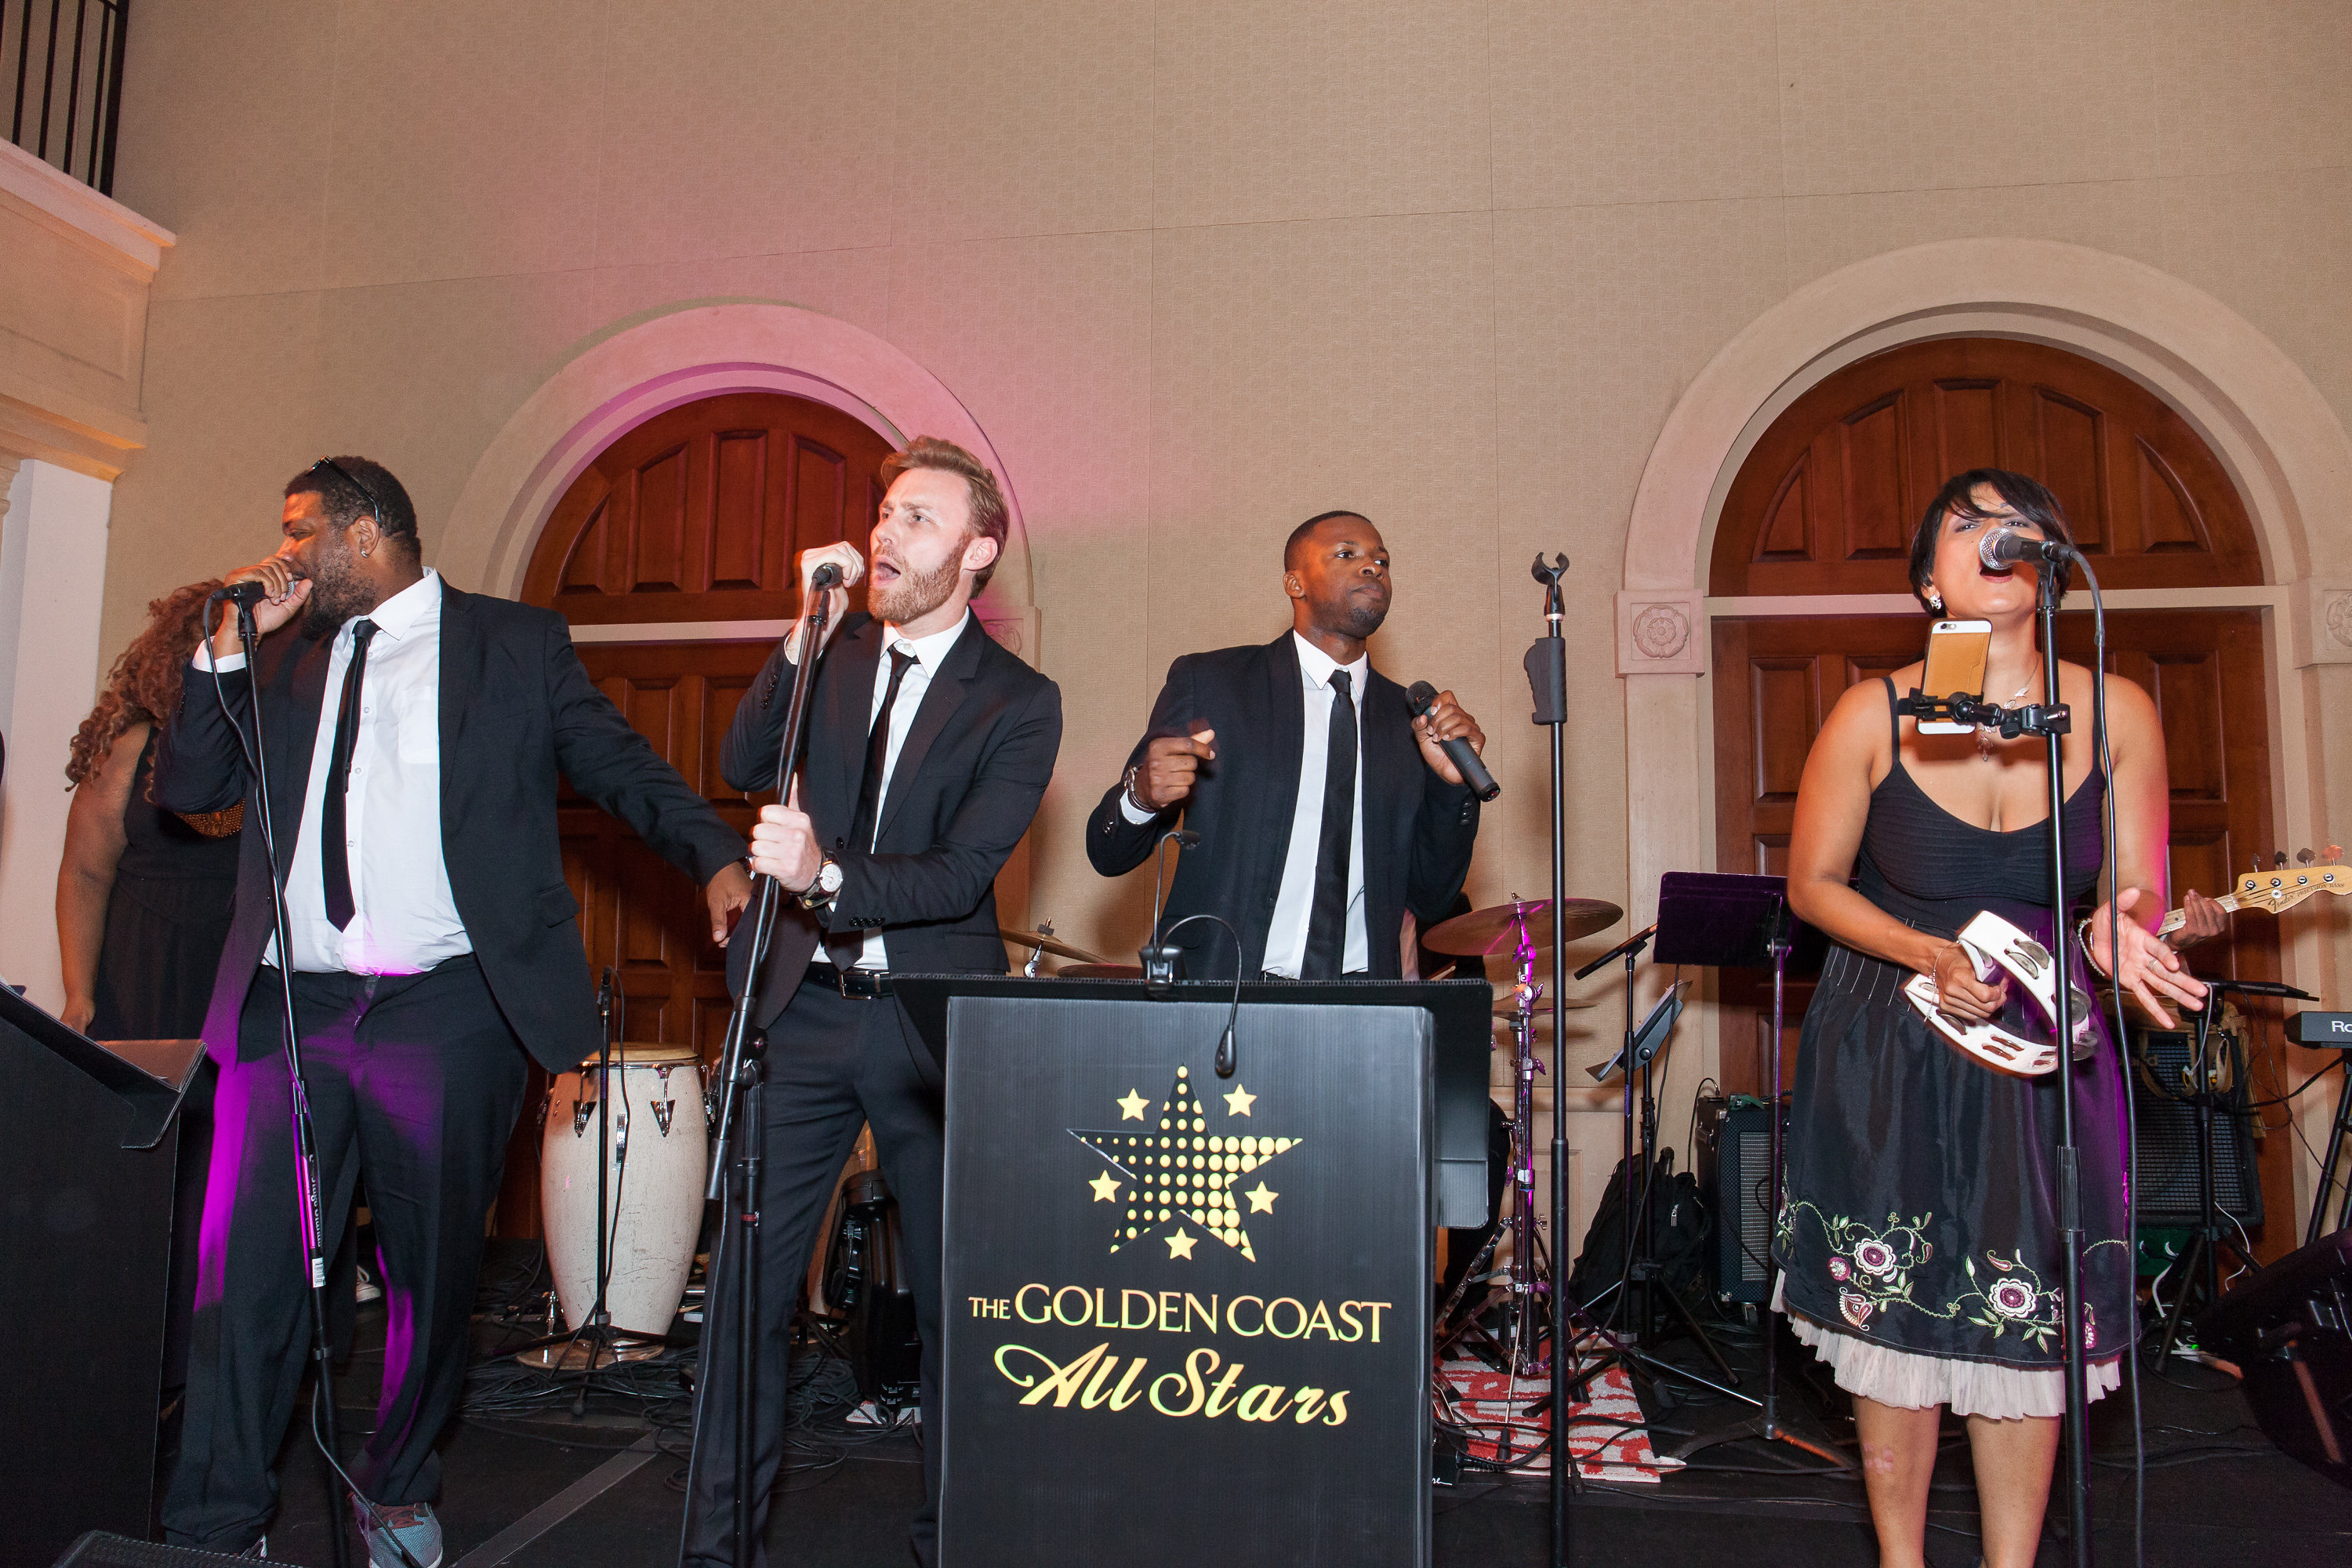 The Golden Coast All Stars band at wedding reception